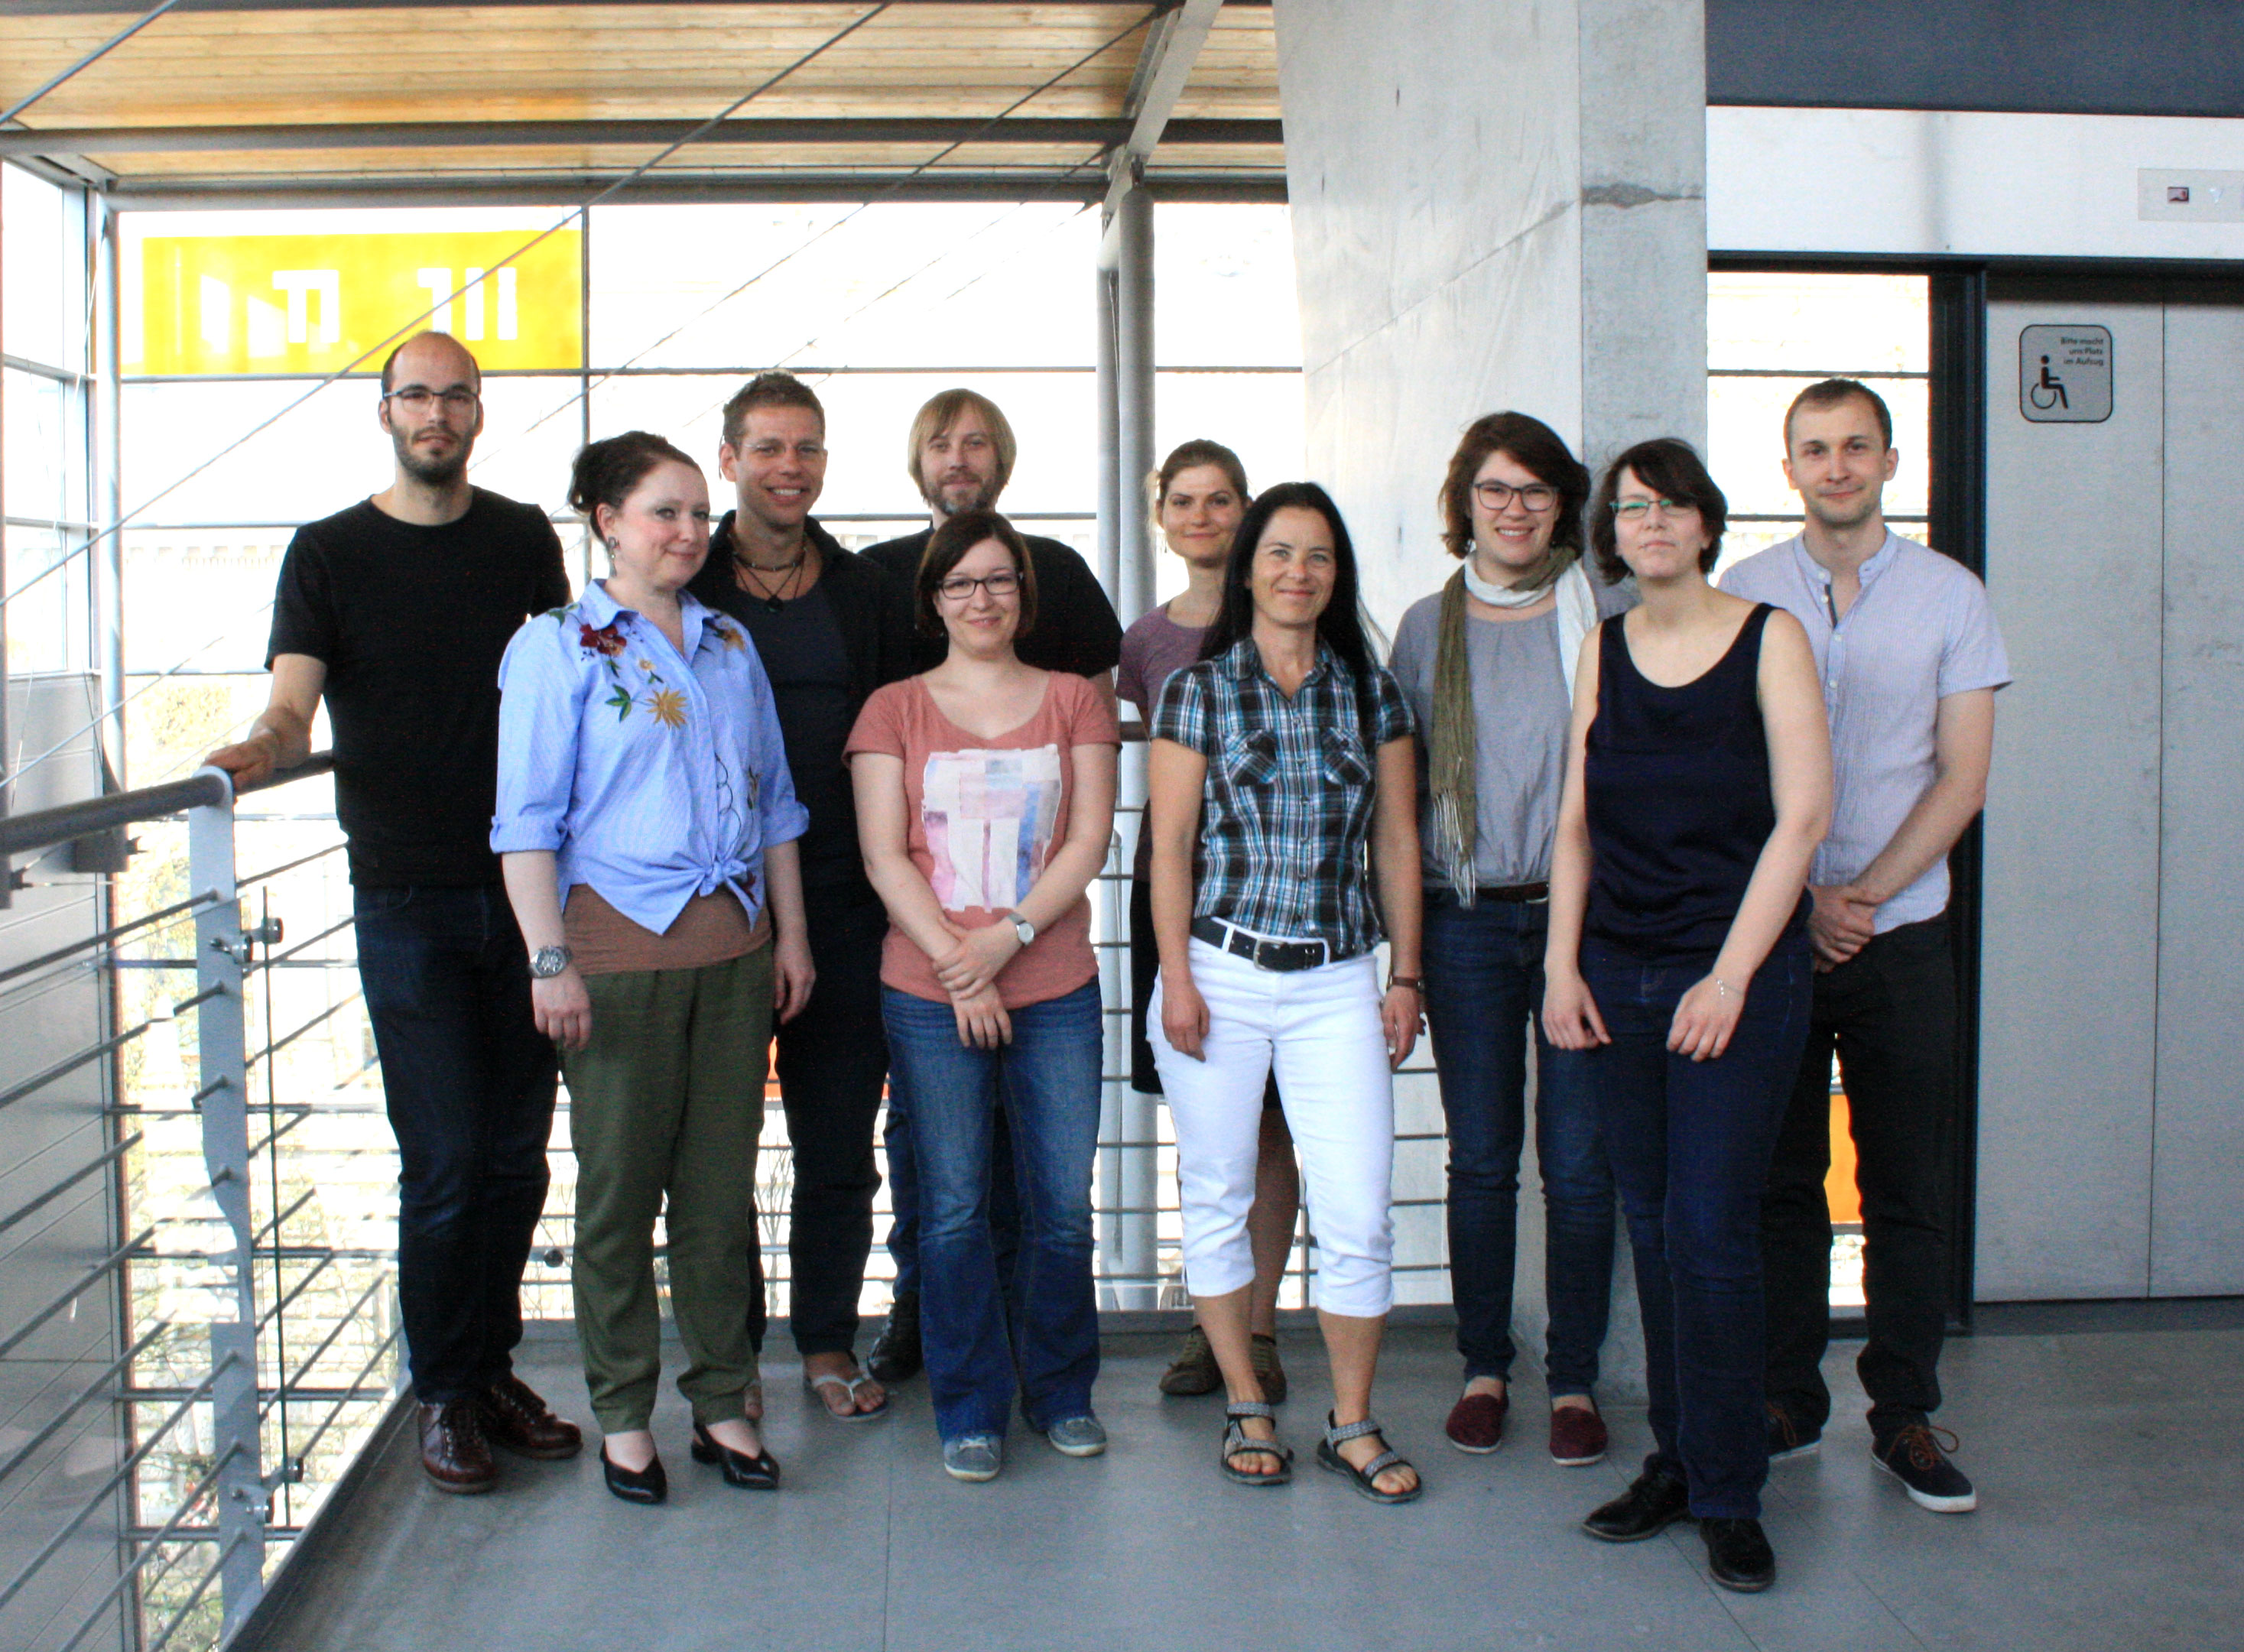 The first workshop's participants: James Dorson, Christina Meyer, Sebastian M. Herrmann, Sebastian Domsch, Katharina Gerund, Michaela Beck, Katja Kanzler, Regina Schober, Gesine Wegner, and Stefan Schubert (left to right)